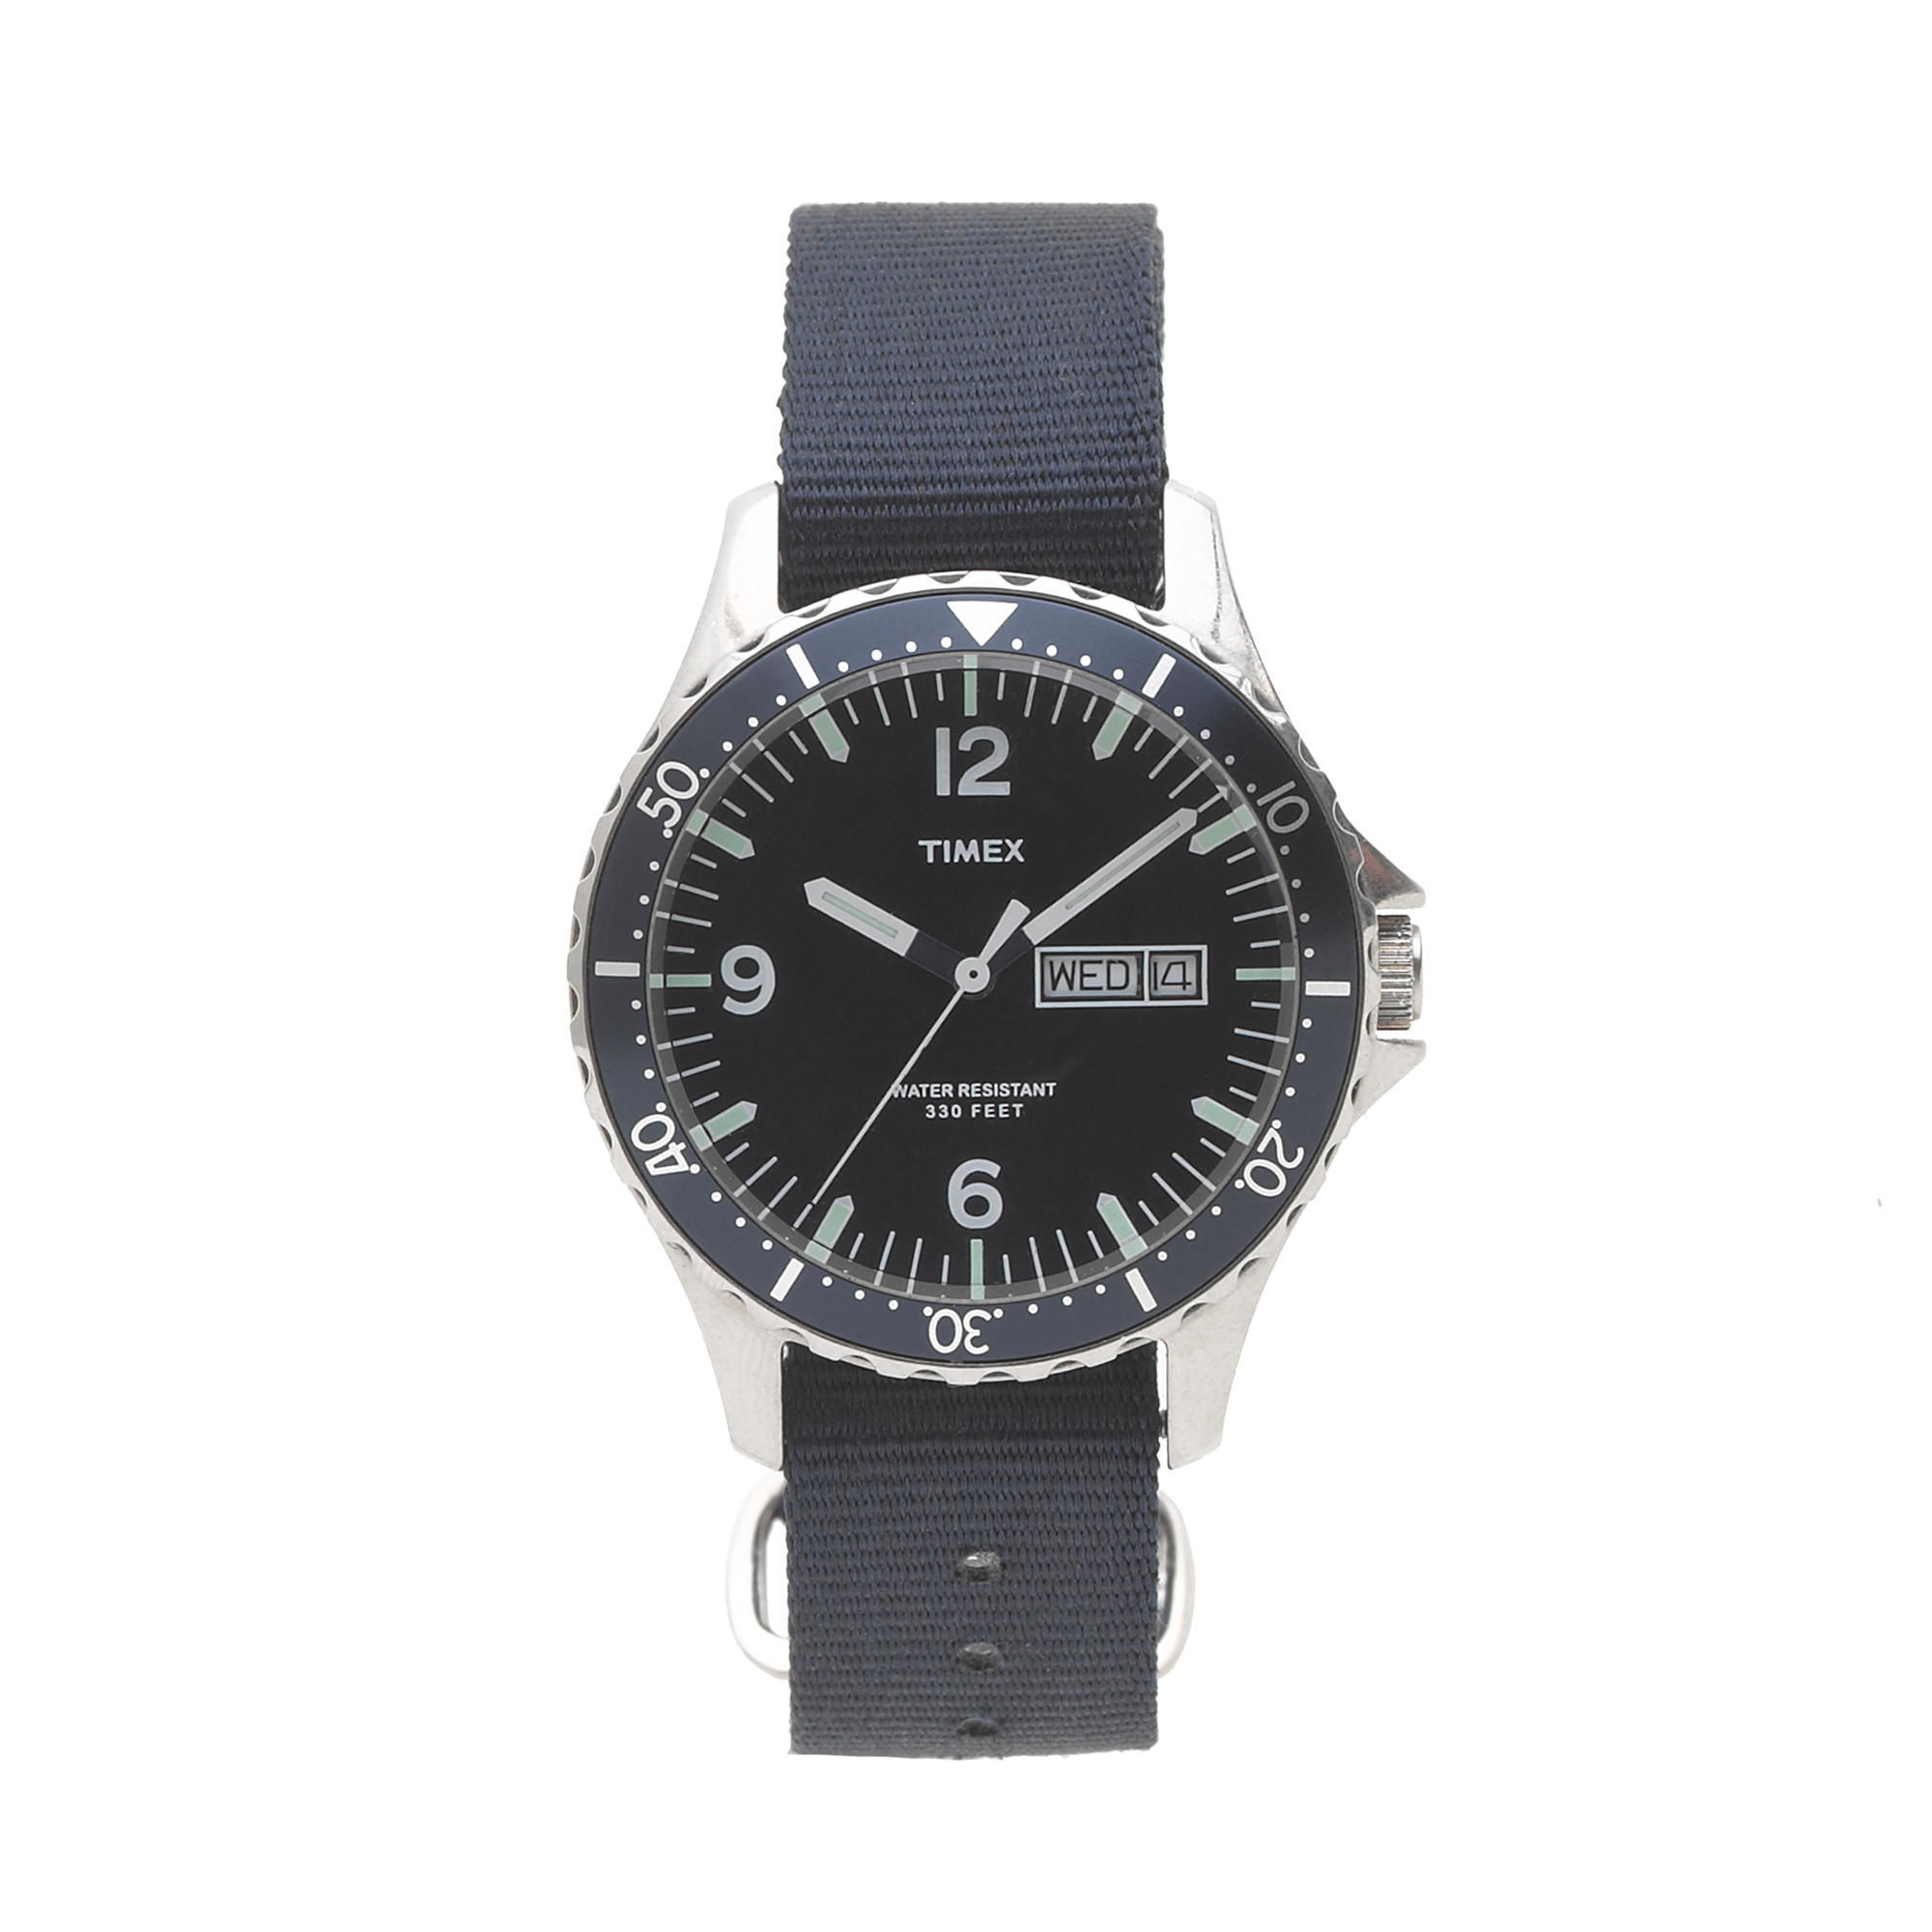 TIMEX(R) FOR J.CREW ANDROS WATCH